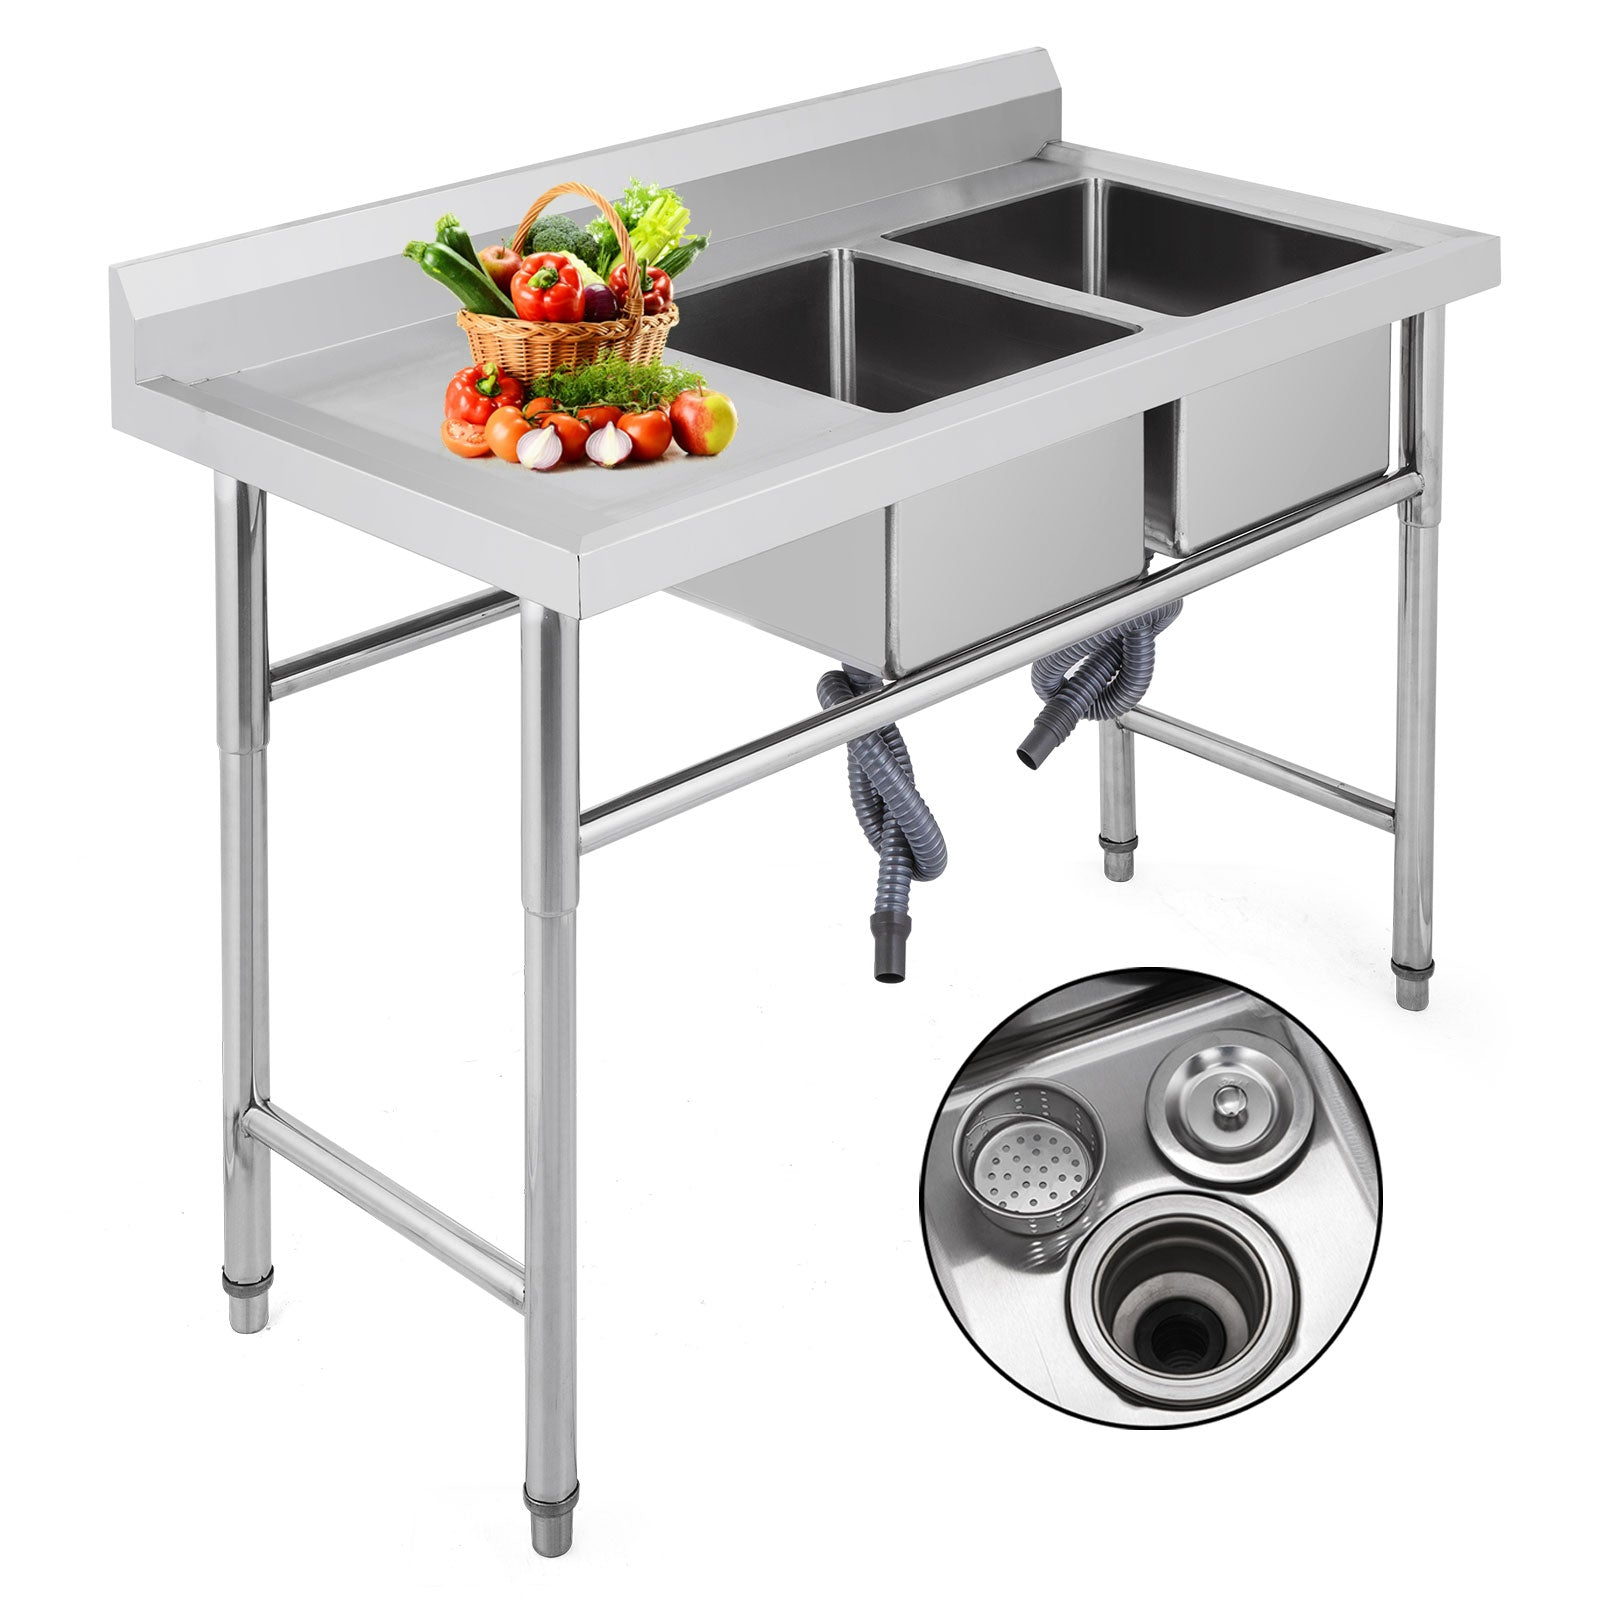 Stainless Steel Commercial Sink 2 Bowl Kitchen Catering Prep Table Wastekit